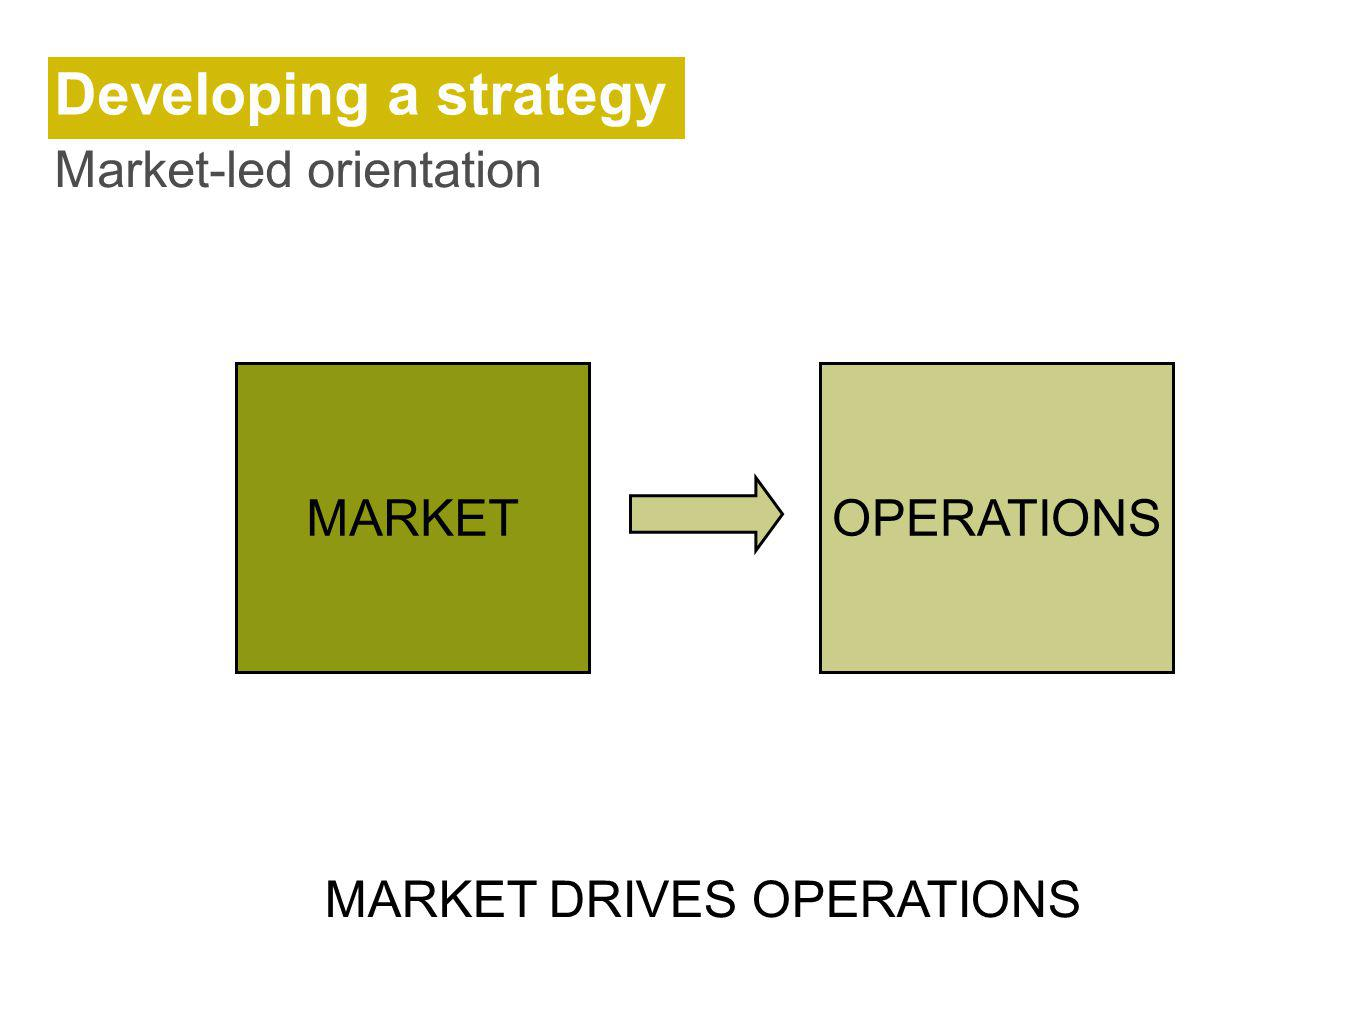 Developing a strategy Market-led orientation MARKET MARKET DRIVES OPERATIONS OPERATIONS